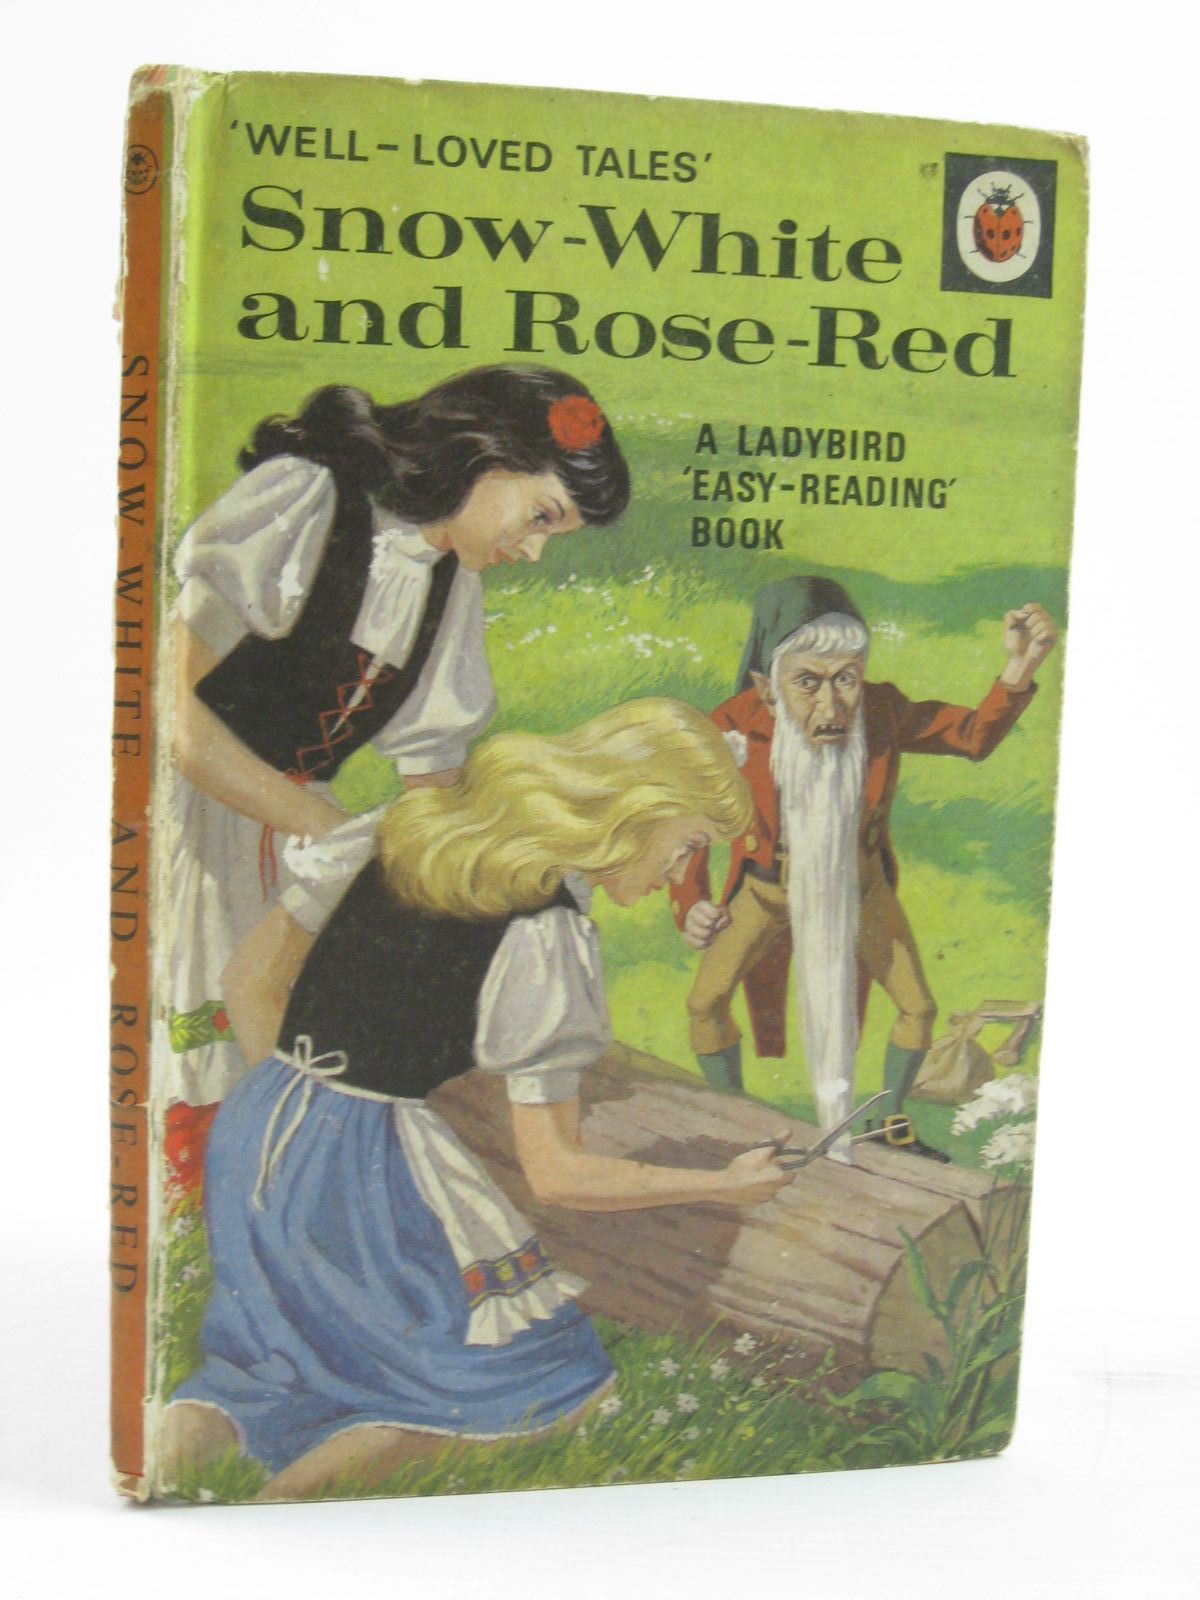 Photo of SNOW-WHITE AND ROSE-RED written by Southgate, Vera illustrated by Winter, Eric published by Wills & Hepworth Ltd. (STOCK CODE: 1507527)  for sale by Stella & Rose's Books